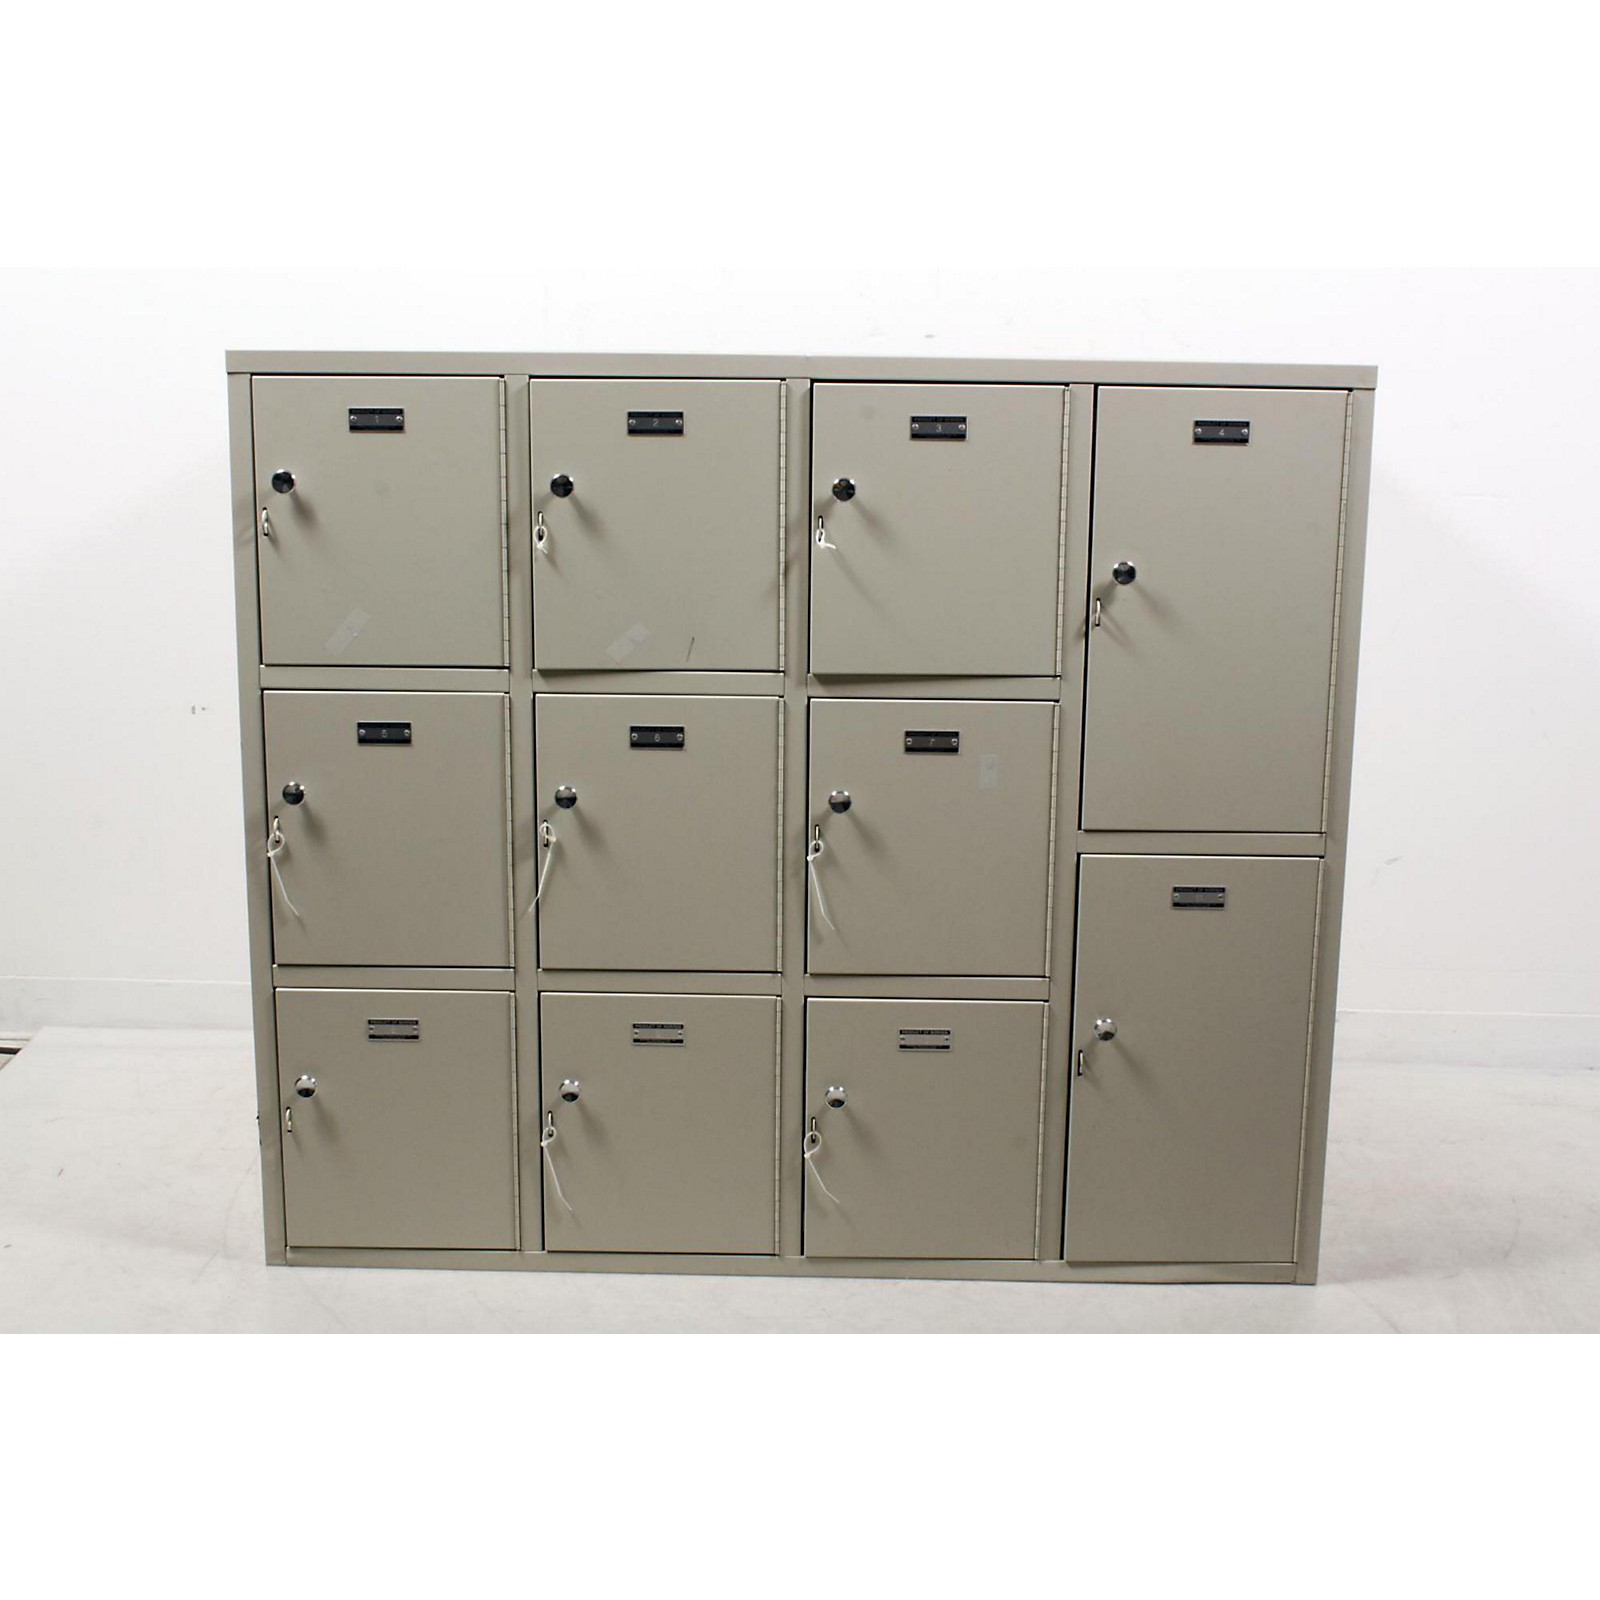 Open Box Norren Modular Instrument Cabinets in Ivory